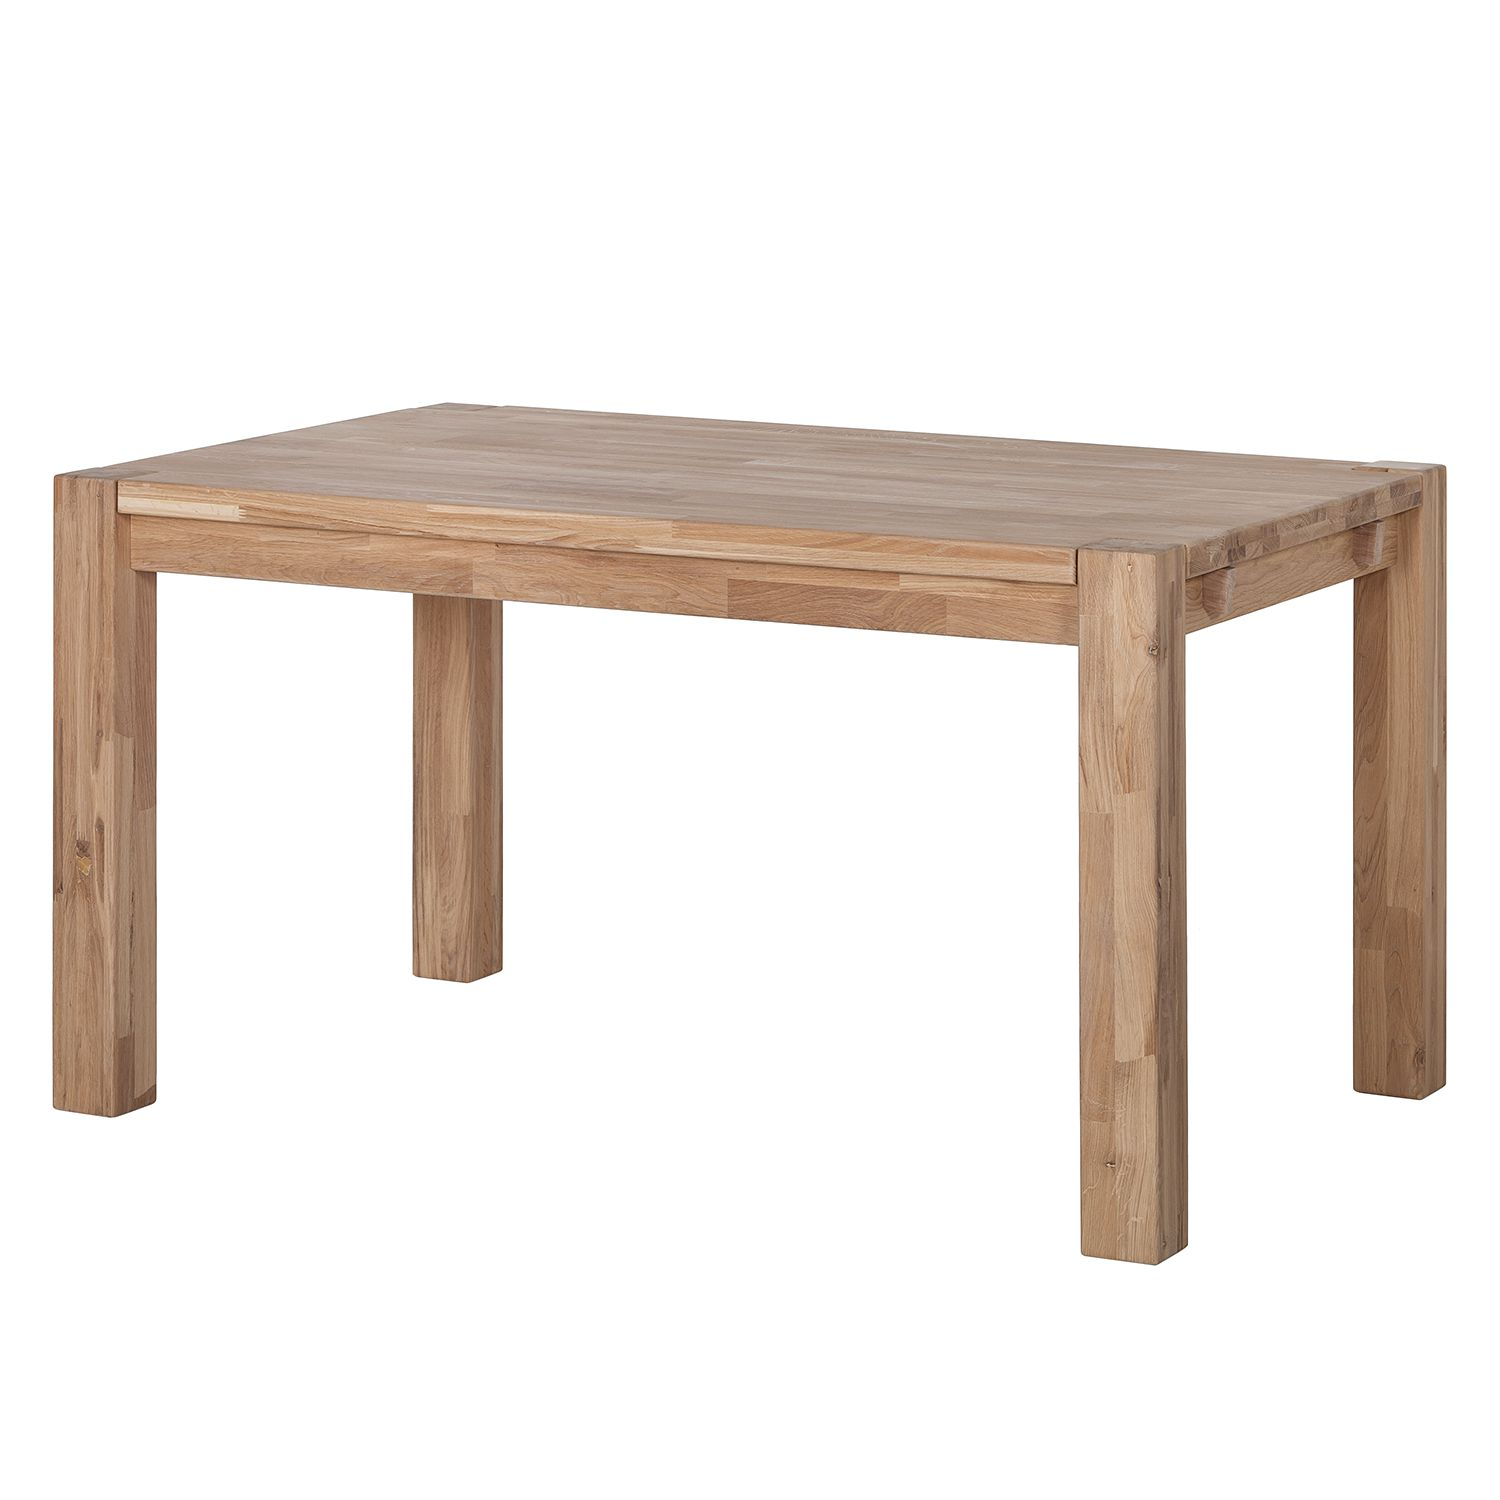 Table salle a manger 120 x 80 for Table de salle a manger home24